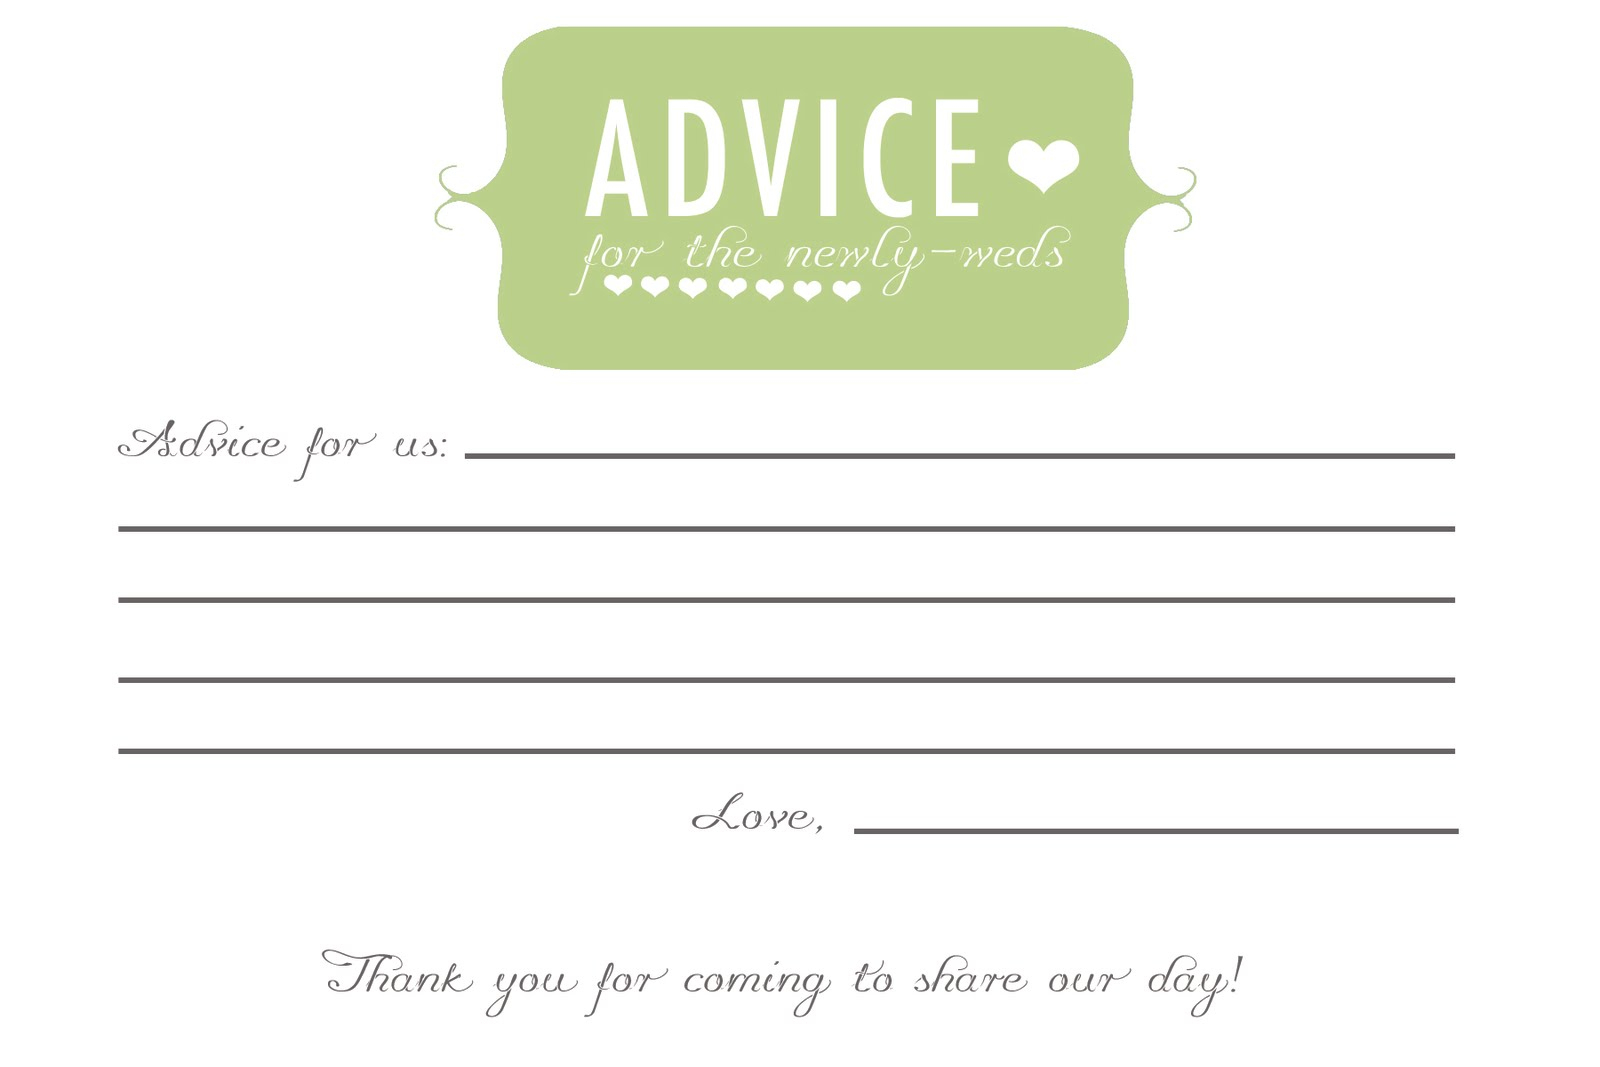 Free Printable Baby Shower Advice Cards - Baby Shower Ideas - Free Printable Baby Advice Cards